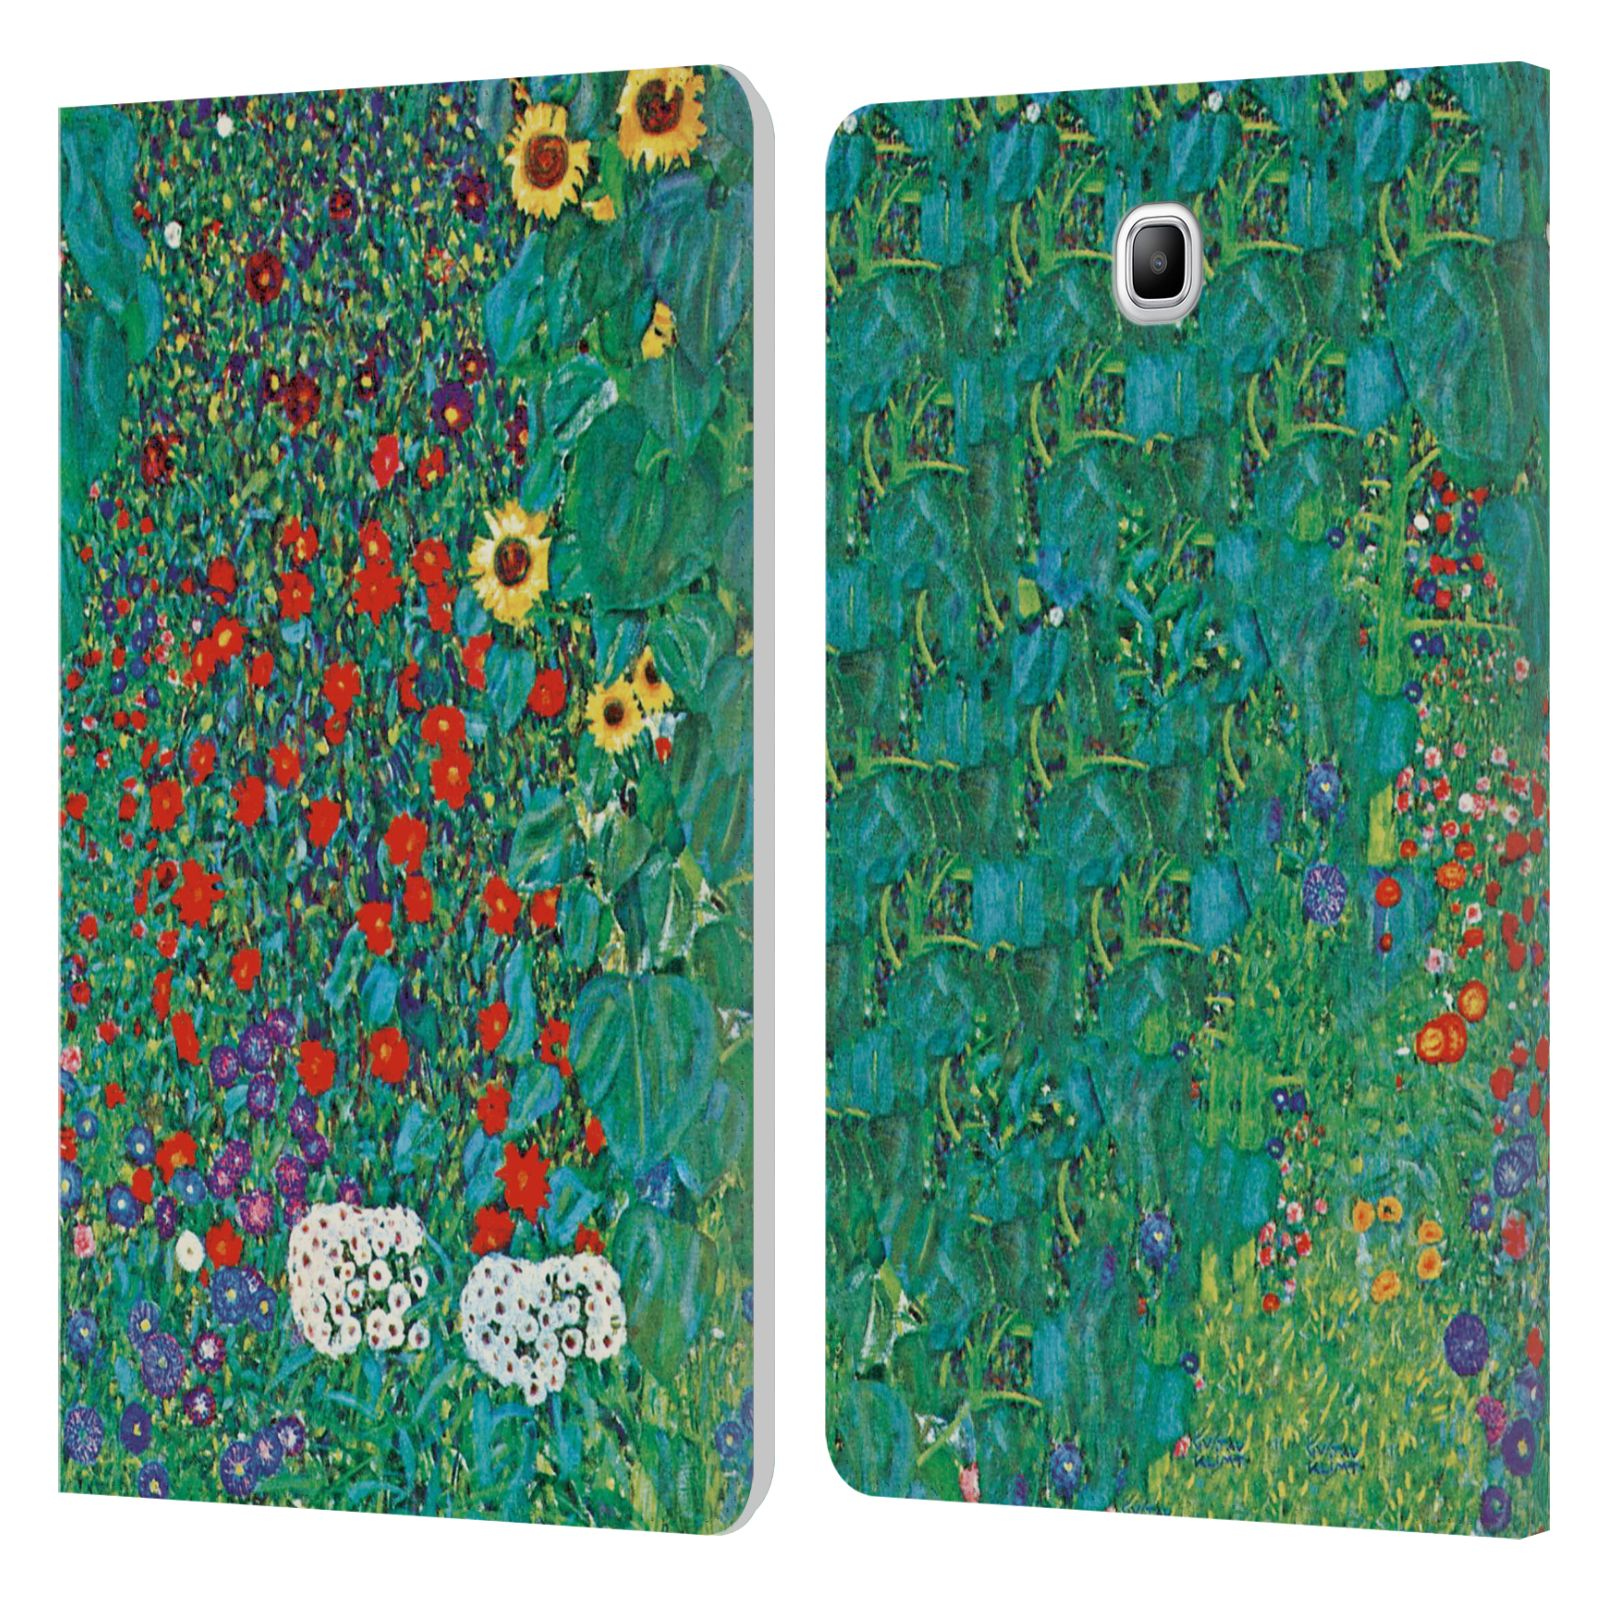 MASTERS-COLLECTION-PAINTINGS-2-LEATHER-BOOK-CASE-FOR-SAMSUNG-GALAXY-TABLETS